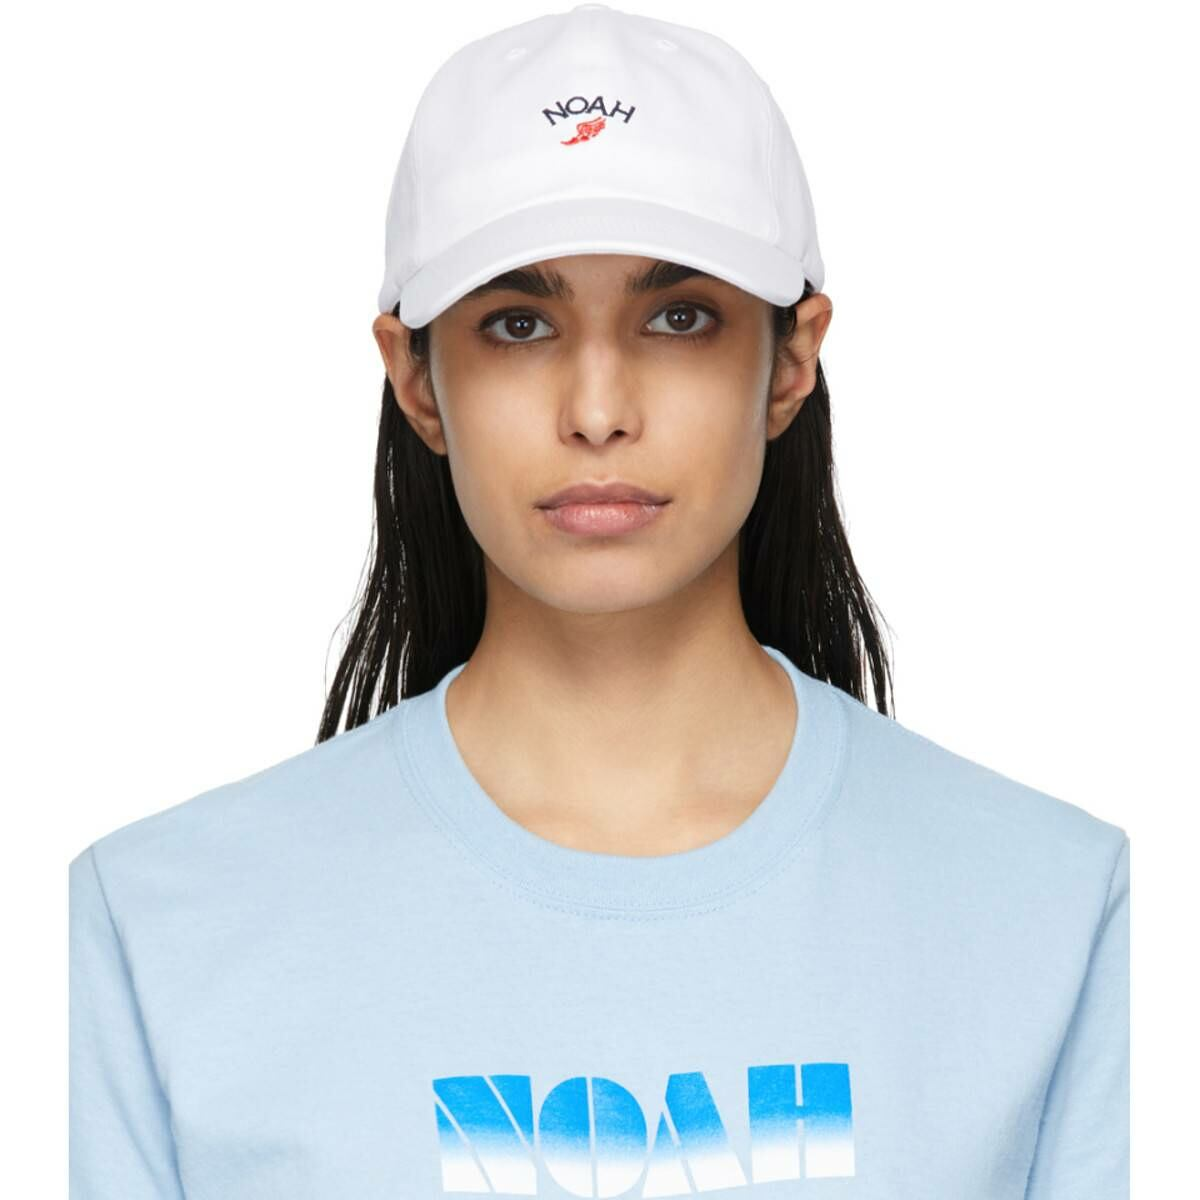 Noah NYC White Winged Foot Cap Ssense USA WOMEN Women ACCESSORIES Womens CAPS